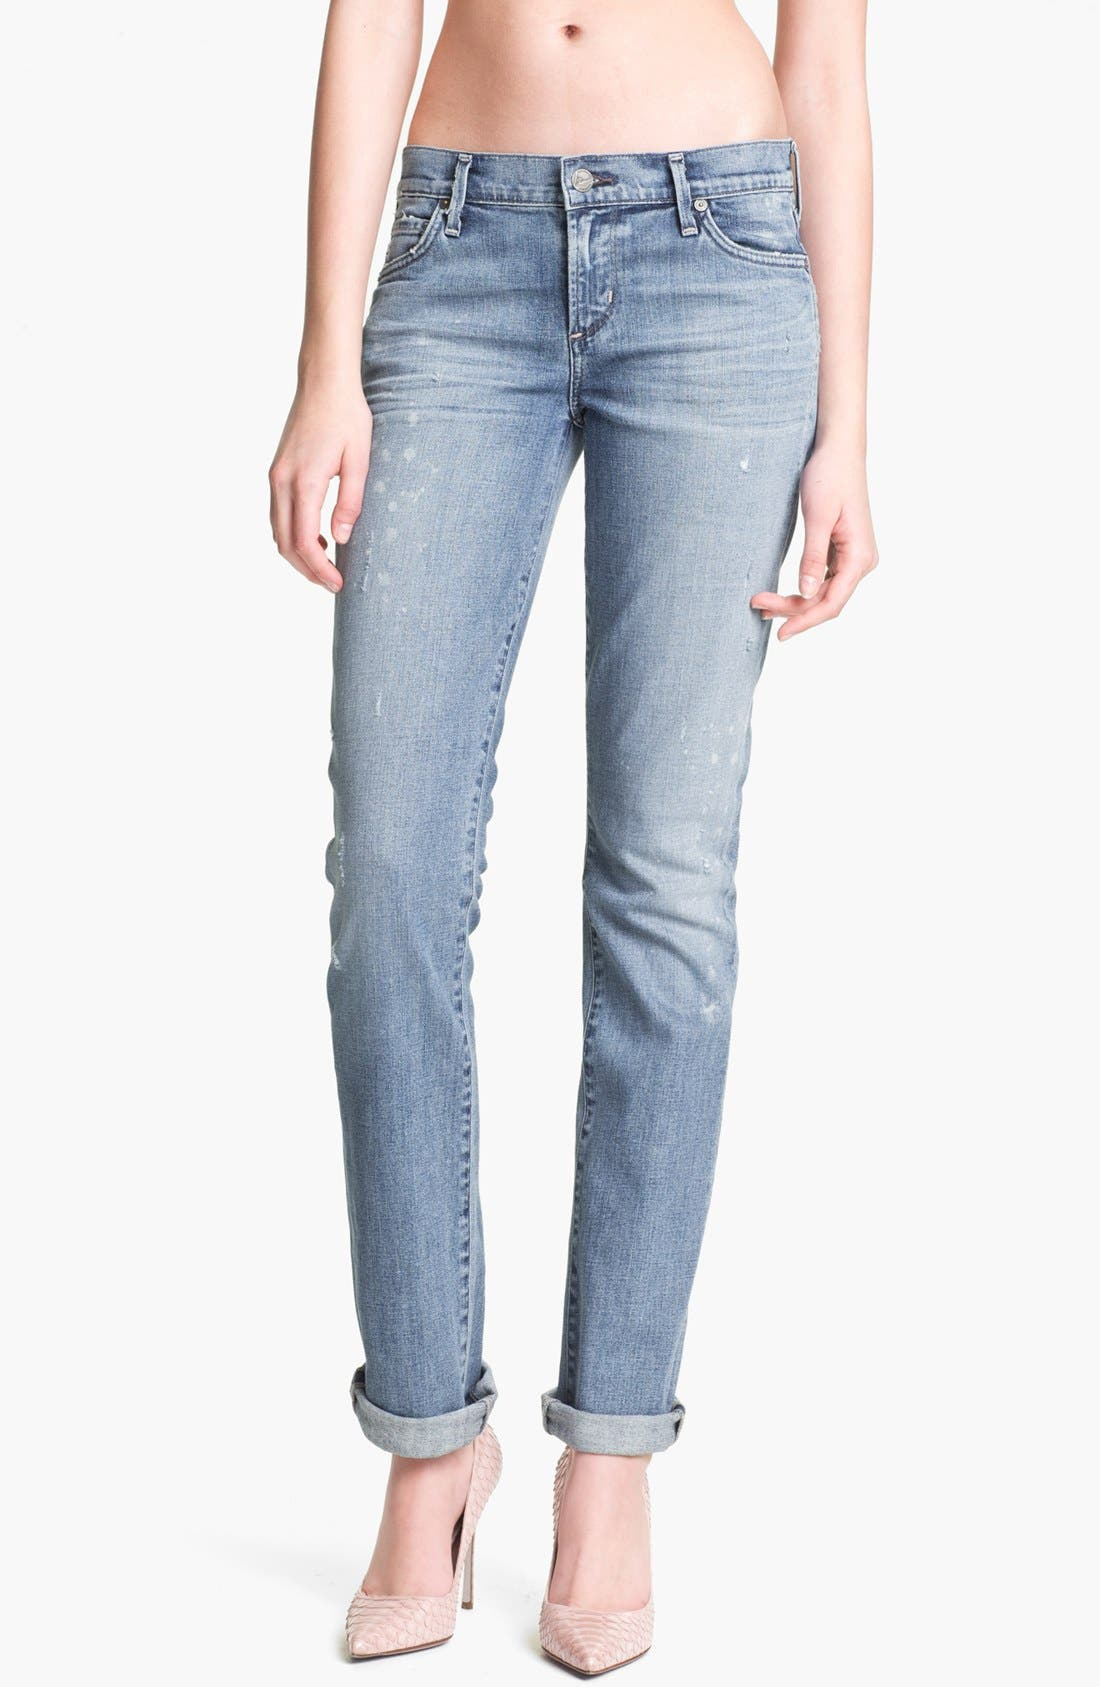 Alternate Image 1 Selected - Citizens of Humanity 'Ava' Straight Leg Jeans (Mystic Blue)